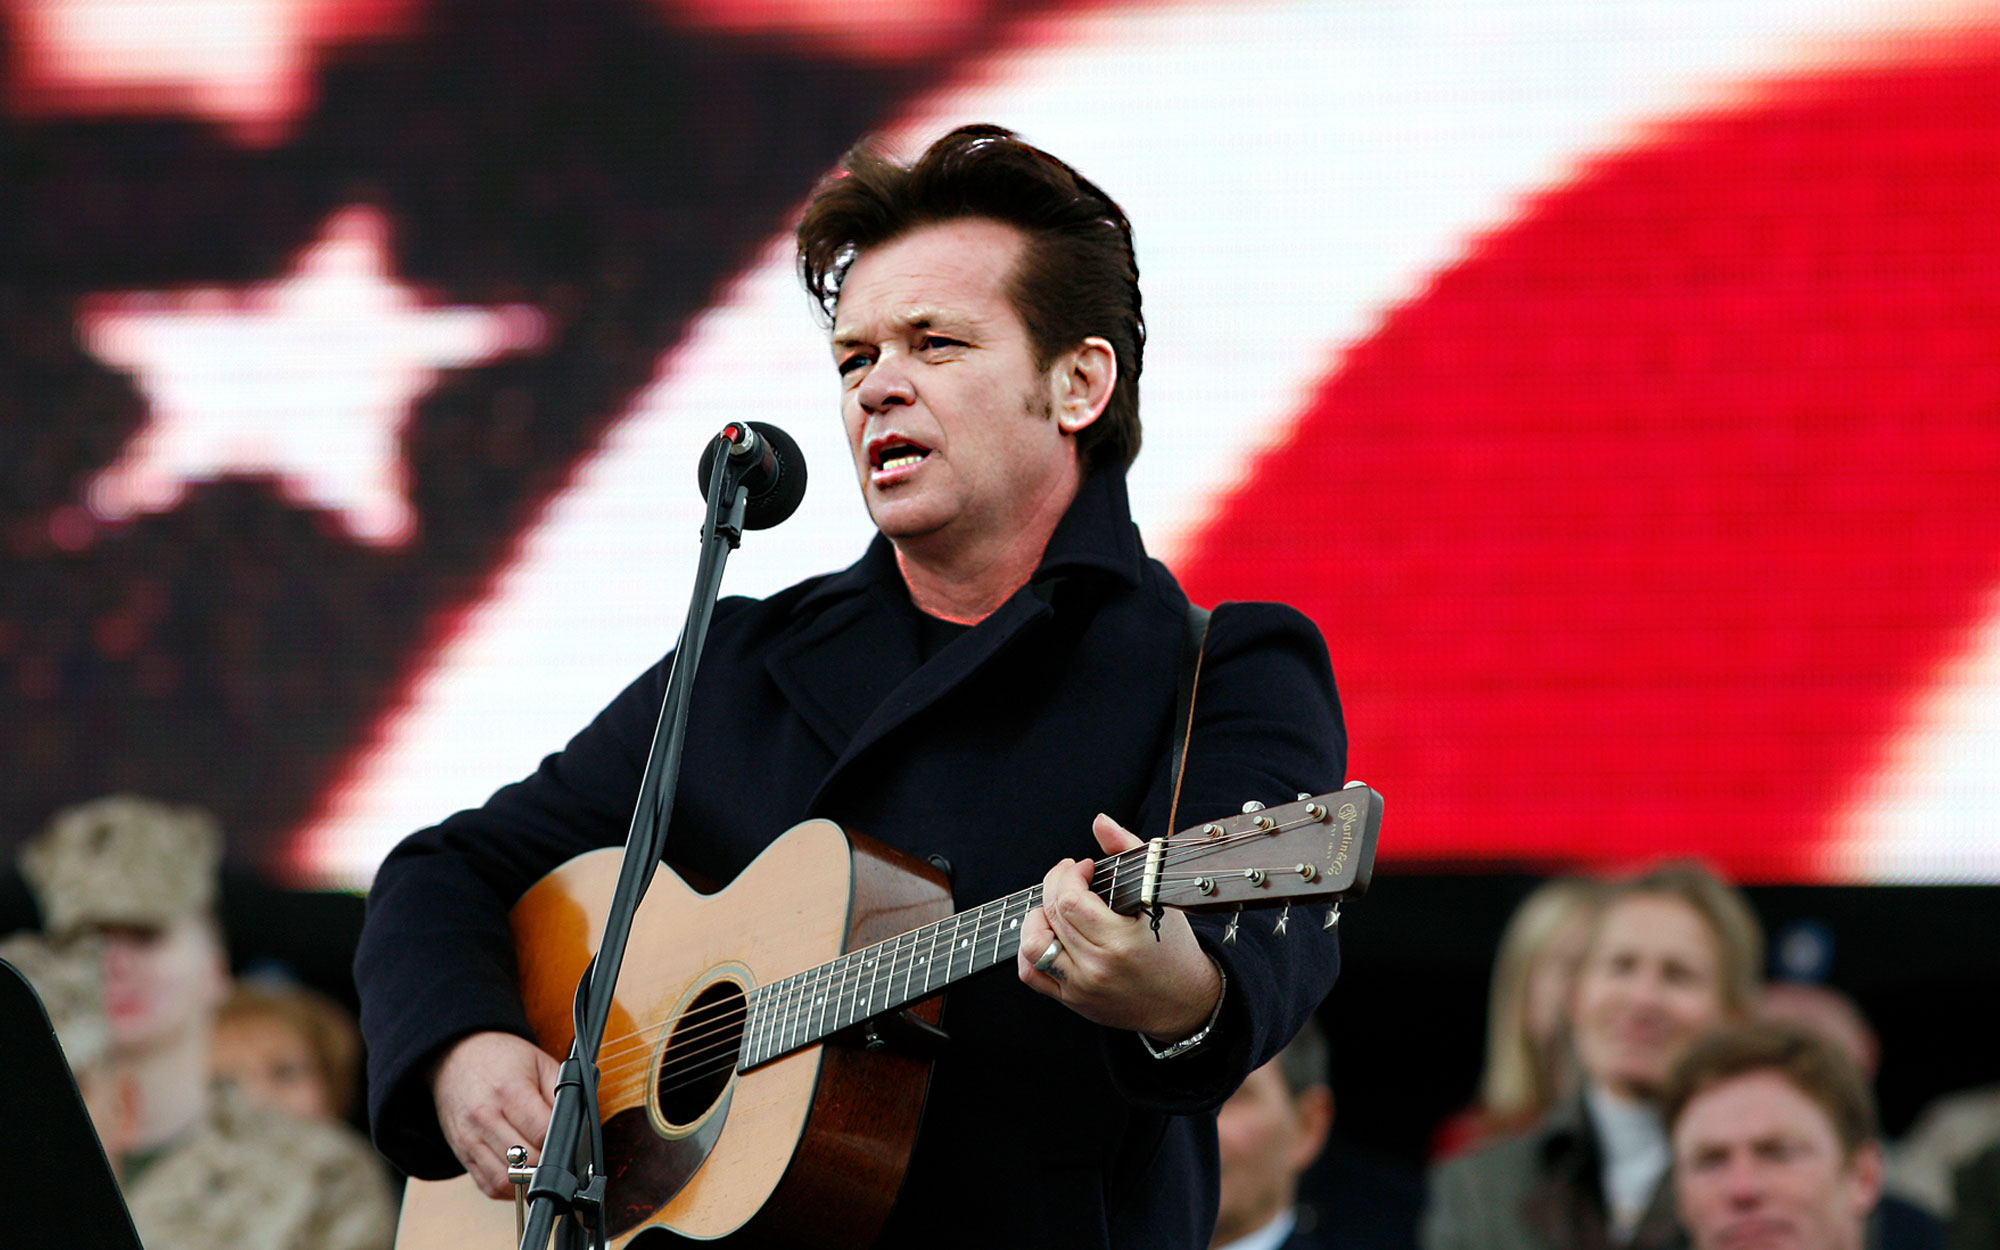 John Mellencamp Includes 'Take a Knee' Segment in Latest Concert